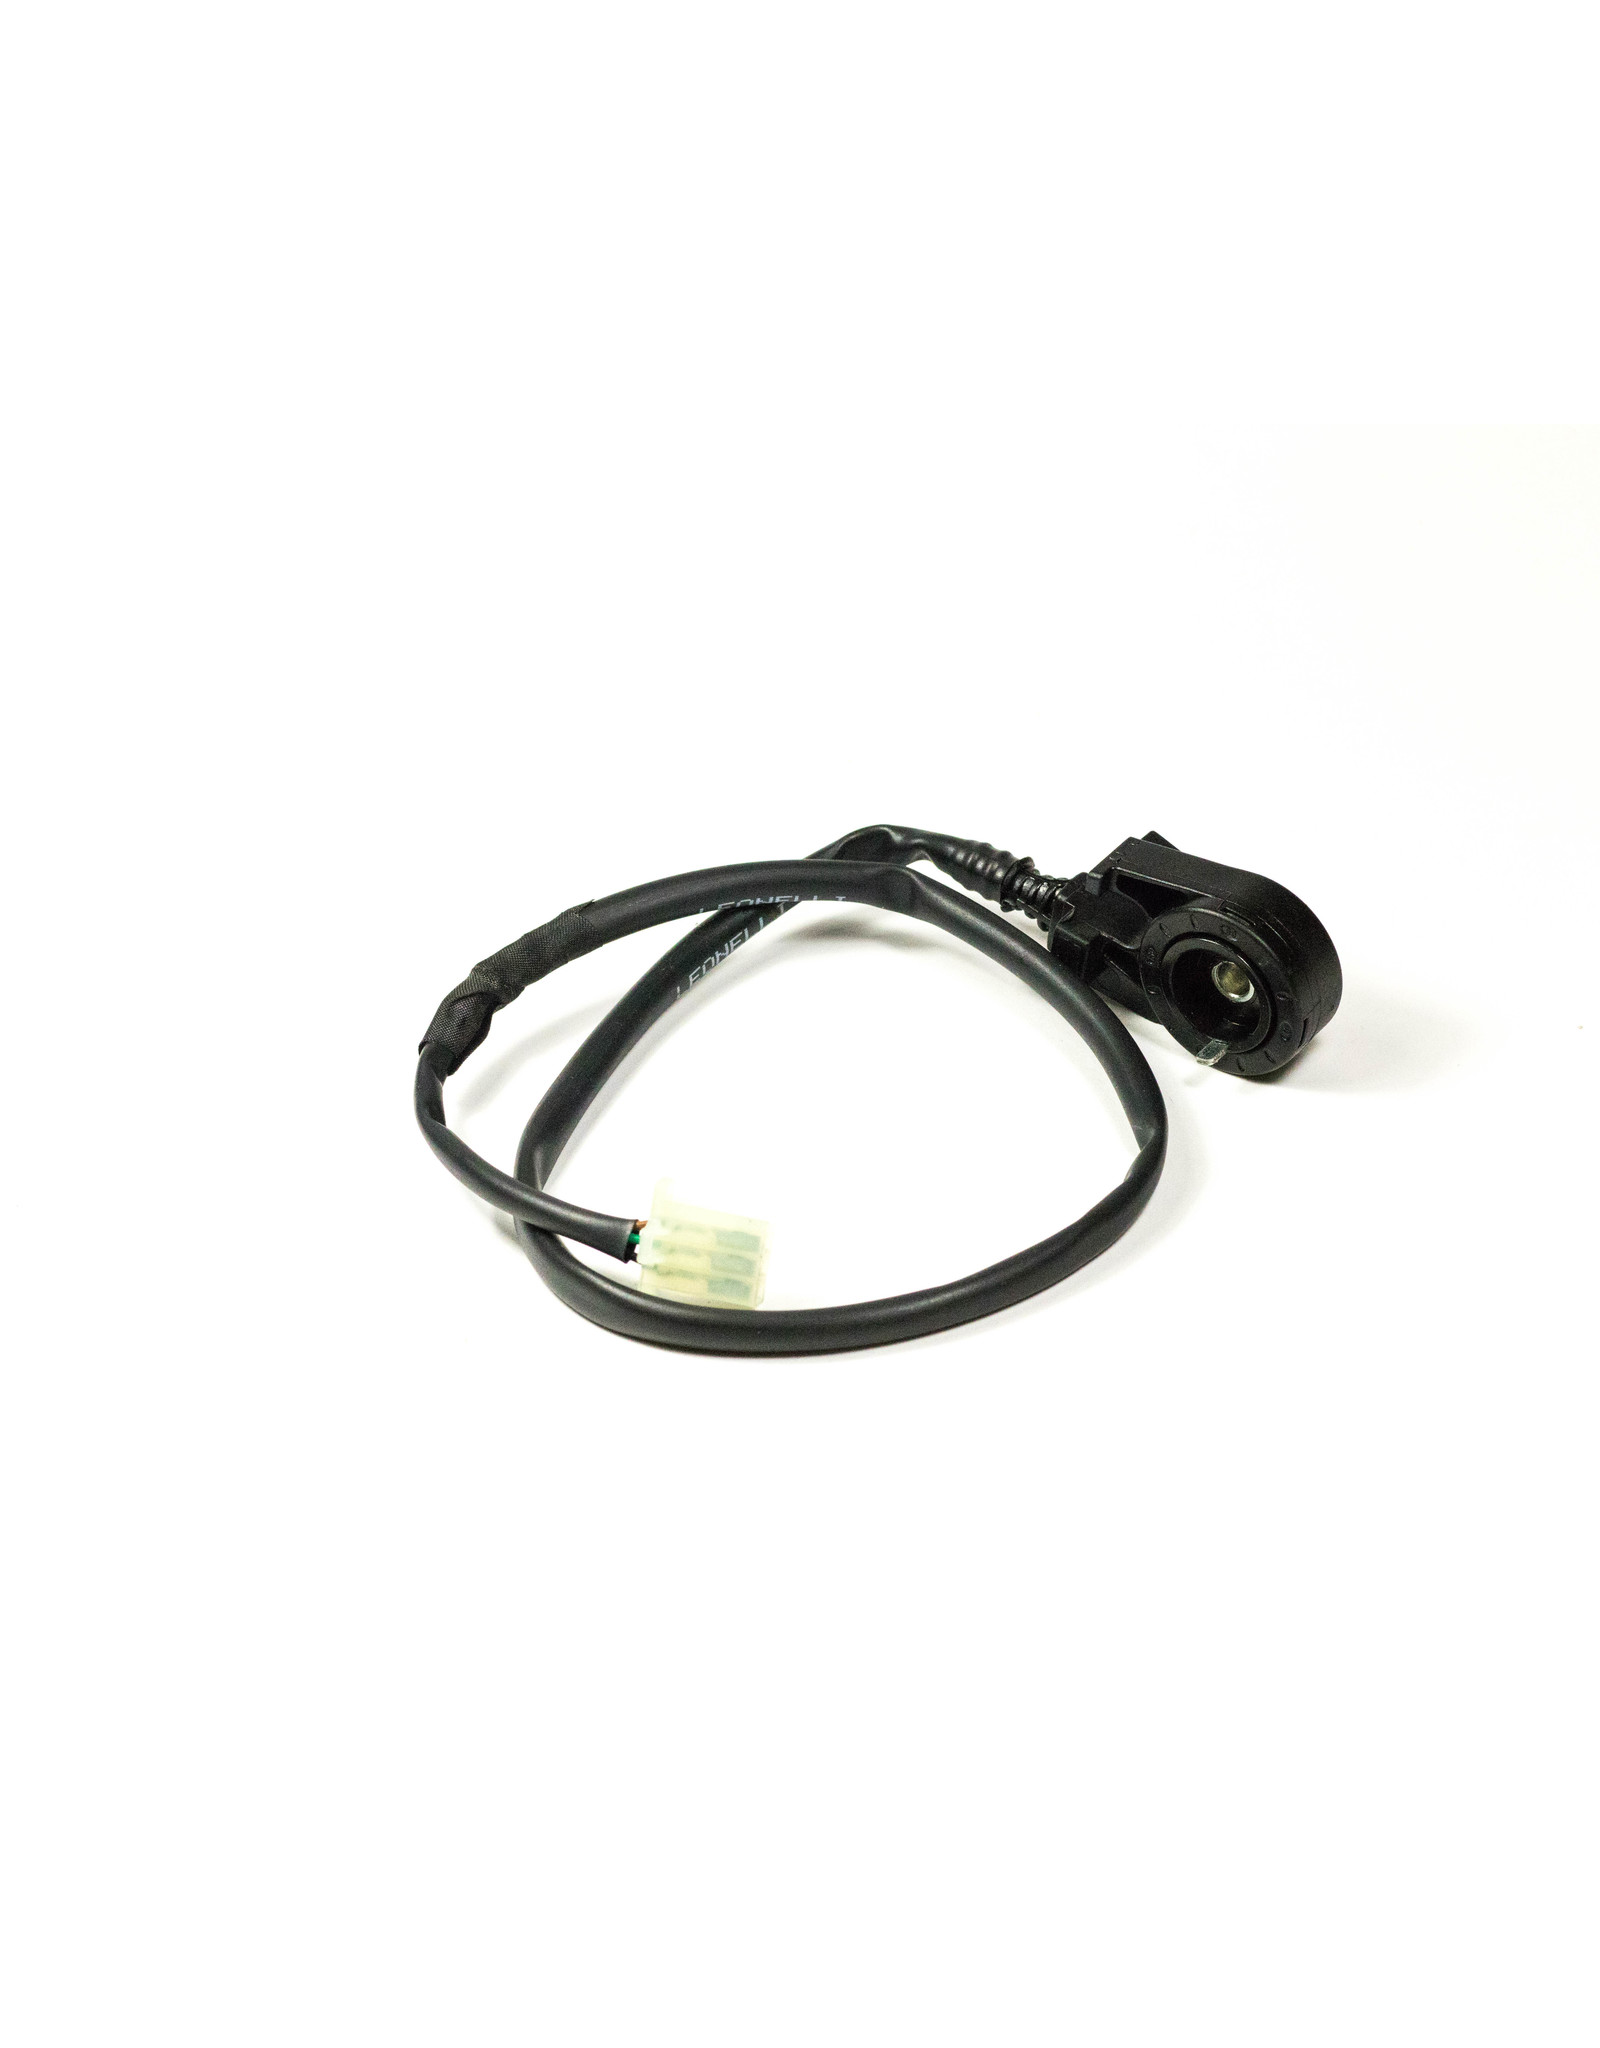 Aprilia Side stand switch gen 1 (To Fit RSV 98-03/Tuono 02-05) AP8124977